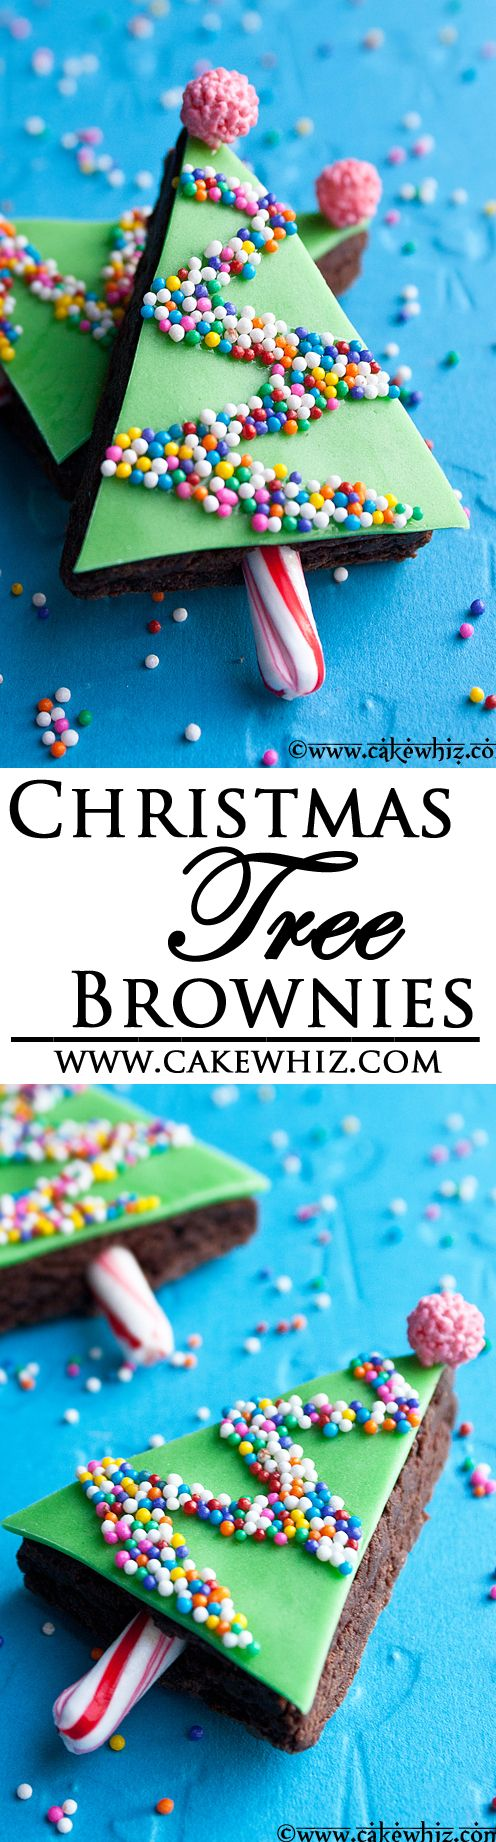 These sprinkly and easy CHRISTMAS TREE BROWNIES are perfect for the holiday season. So much fun to make with kids! From cakewhiz.com